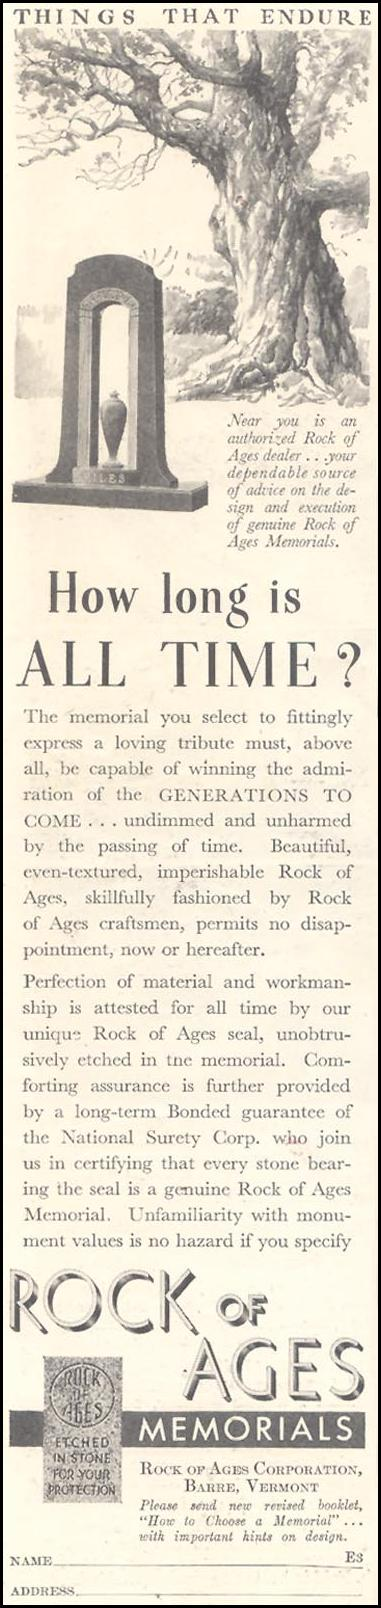 ROCK OF AGES MEMORIALS